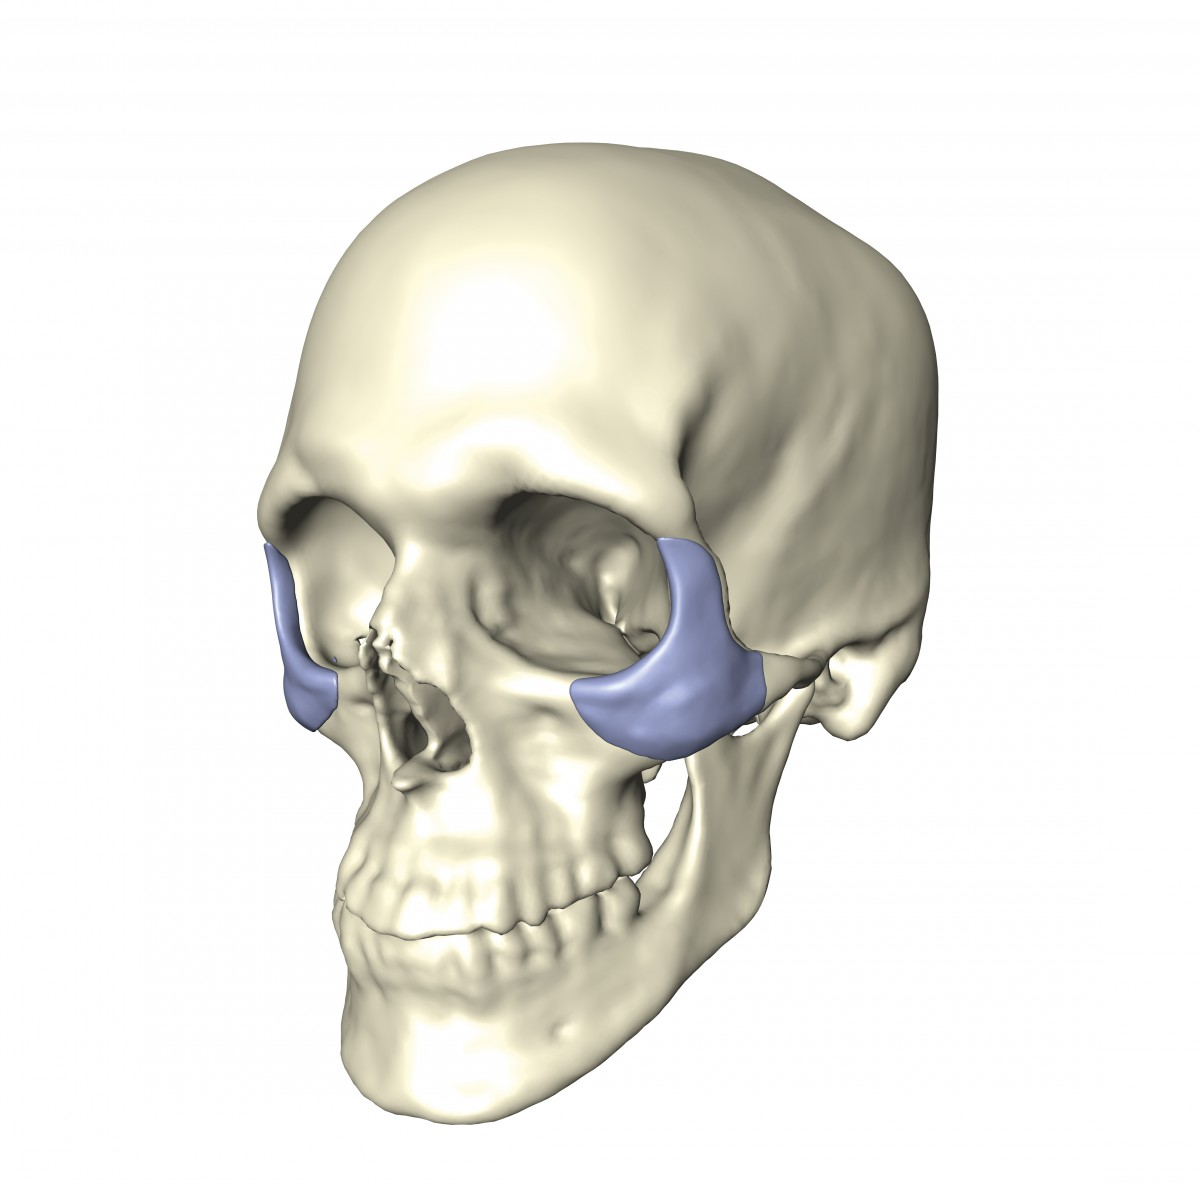 Augmentation implants replace traumatized bone or fill voids left by malformed bones. An important aspect is to restore a socially accepted facial shape, for which the appropriate implant shape has to be determined.